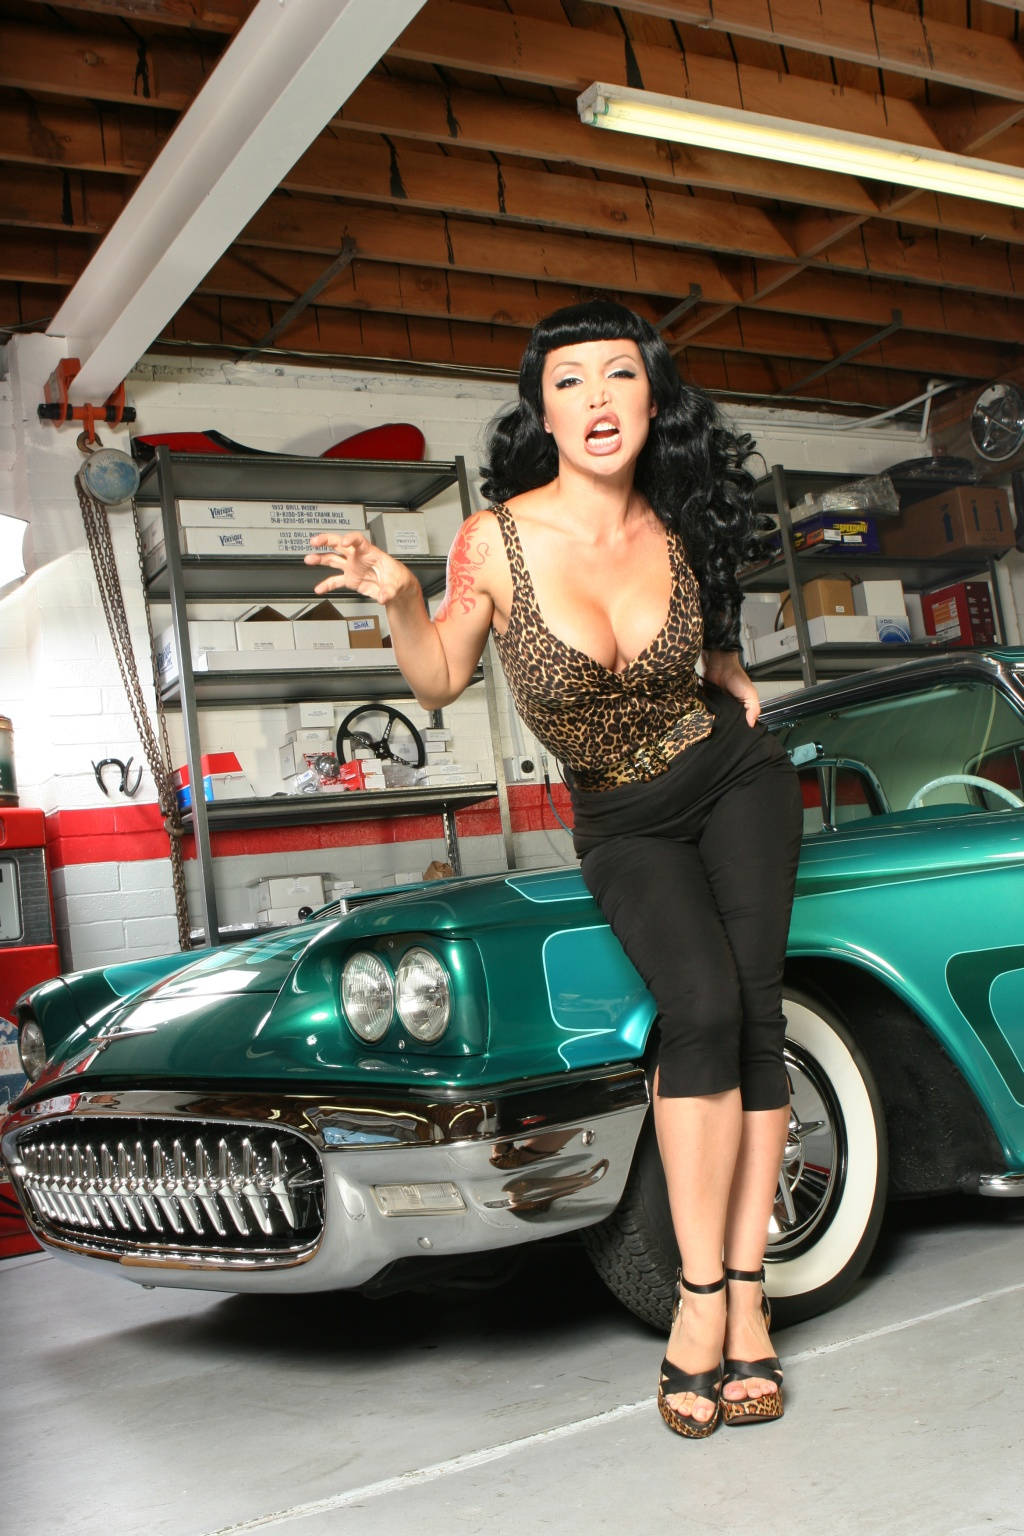 Hot-rod-pinup-Masuimi-Max-3.jpg